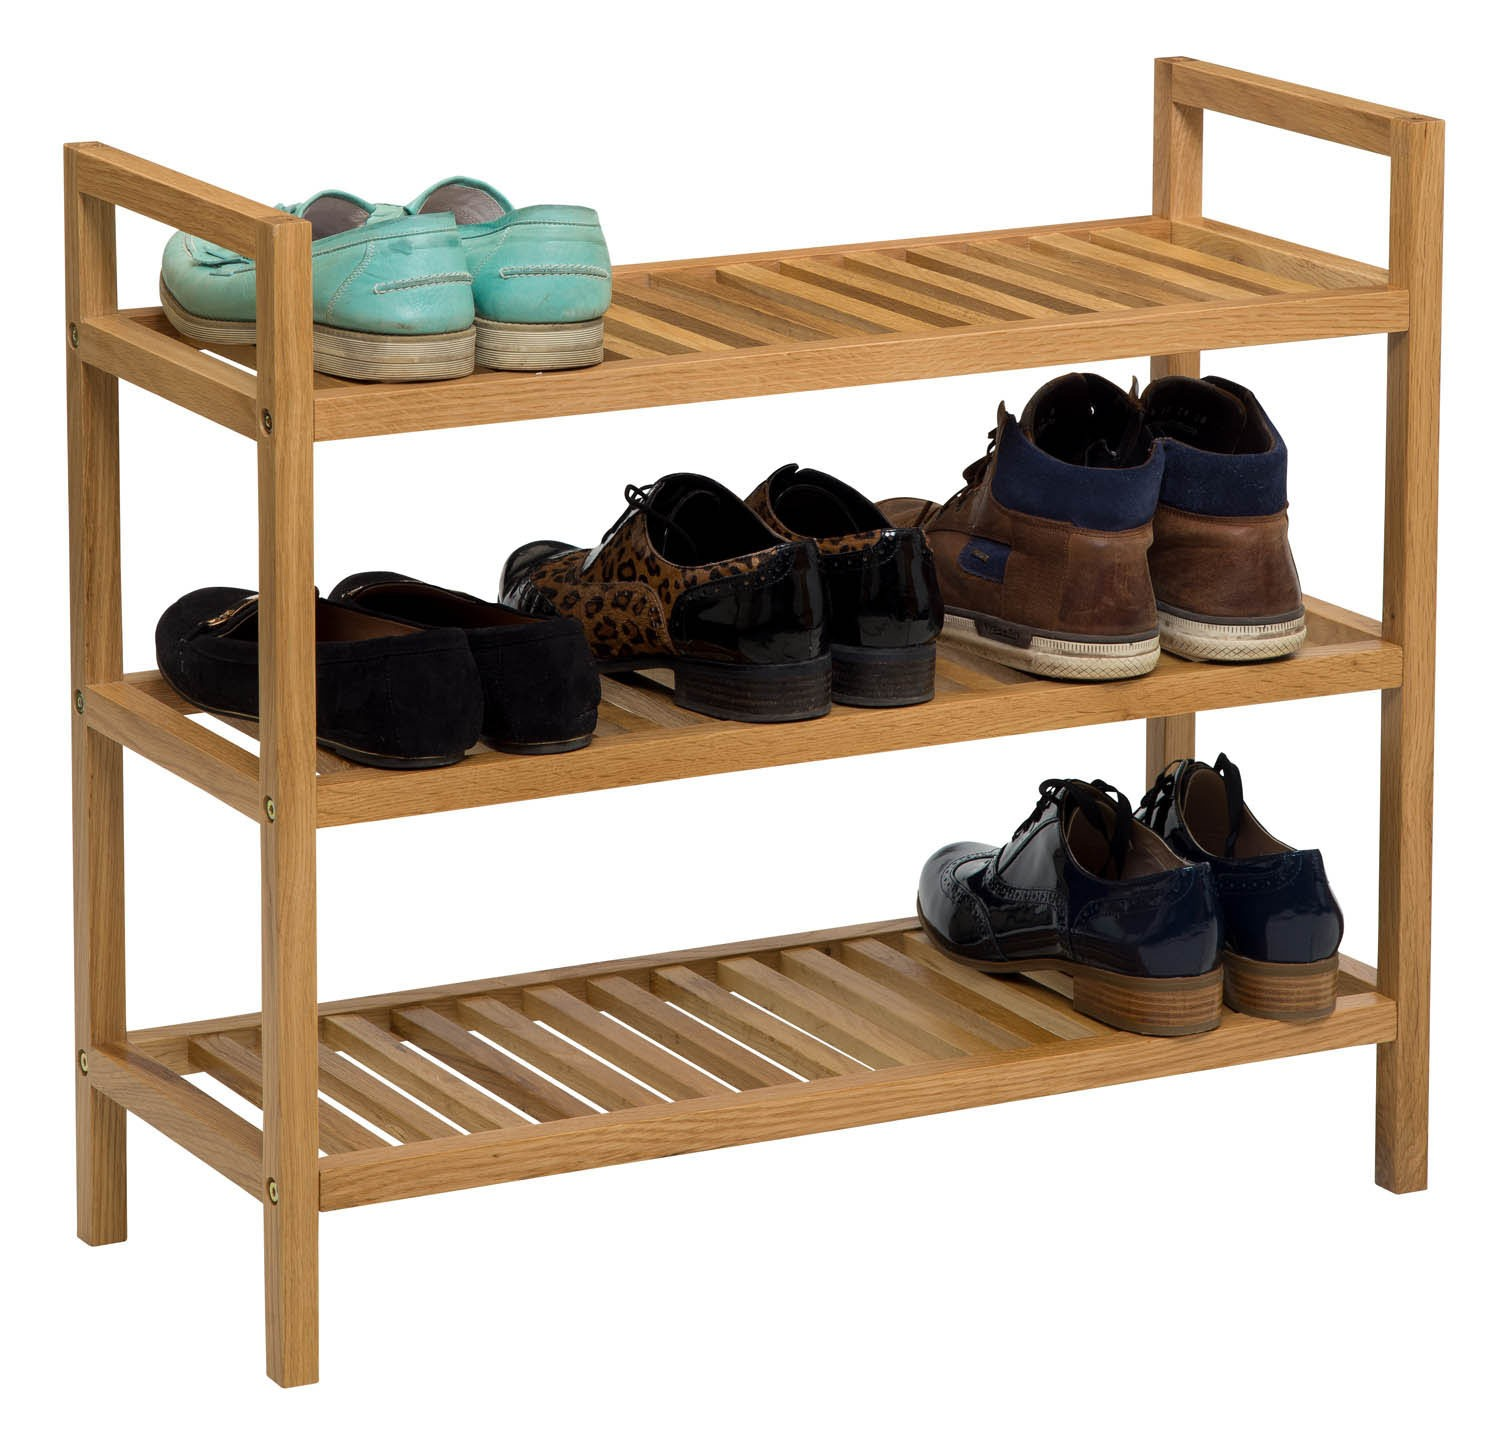 Stcking shoe rack